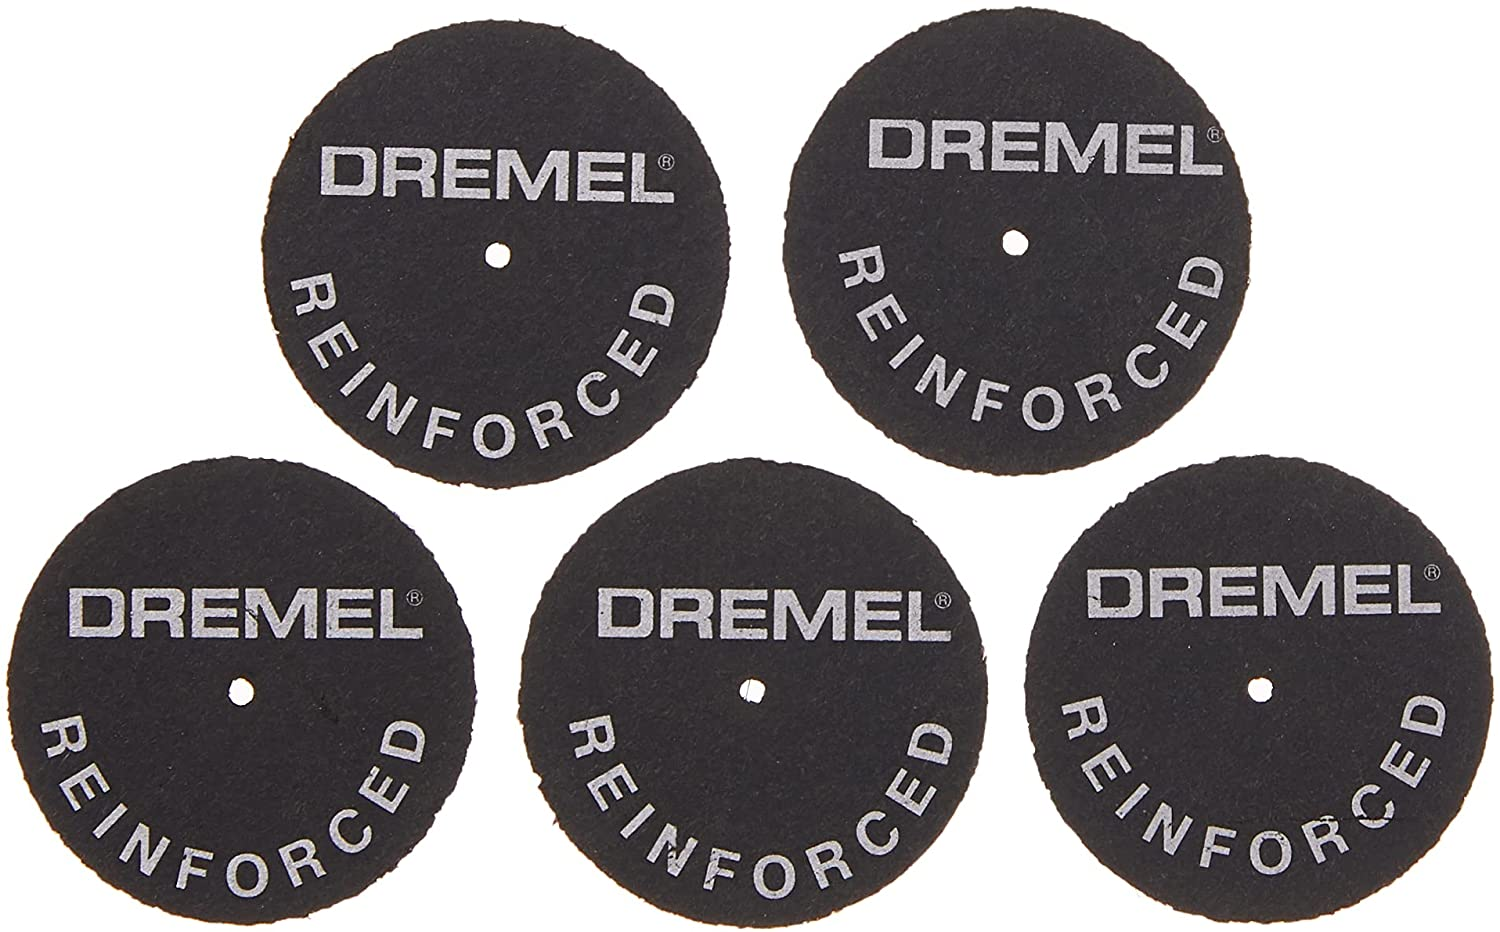 Dremel 426 Fiberglass Reinforced Cut-Off Special price for a limited Max 67% OFF time Wheels 1- .0 Dia. 1 4